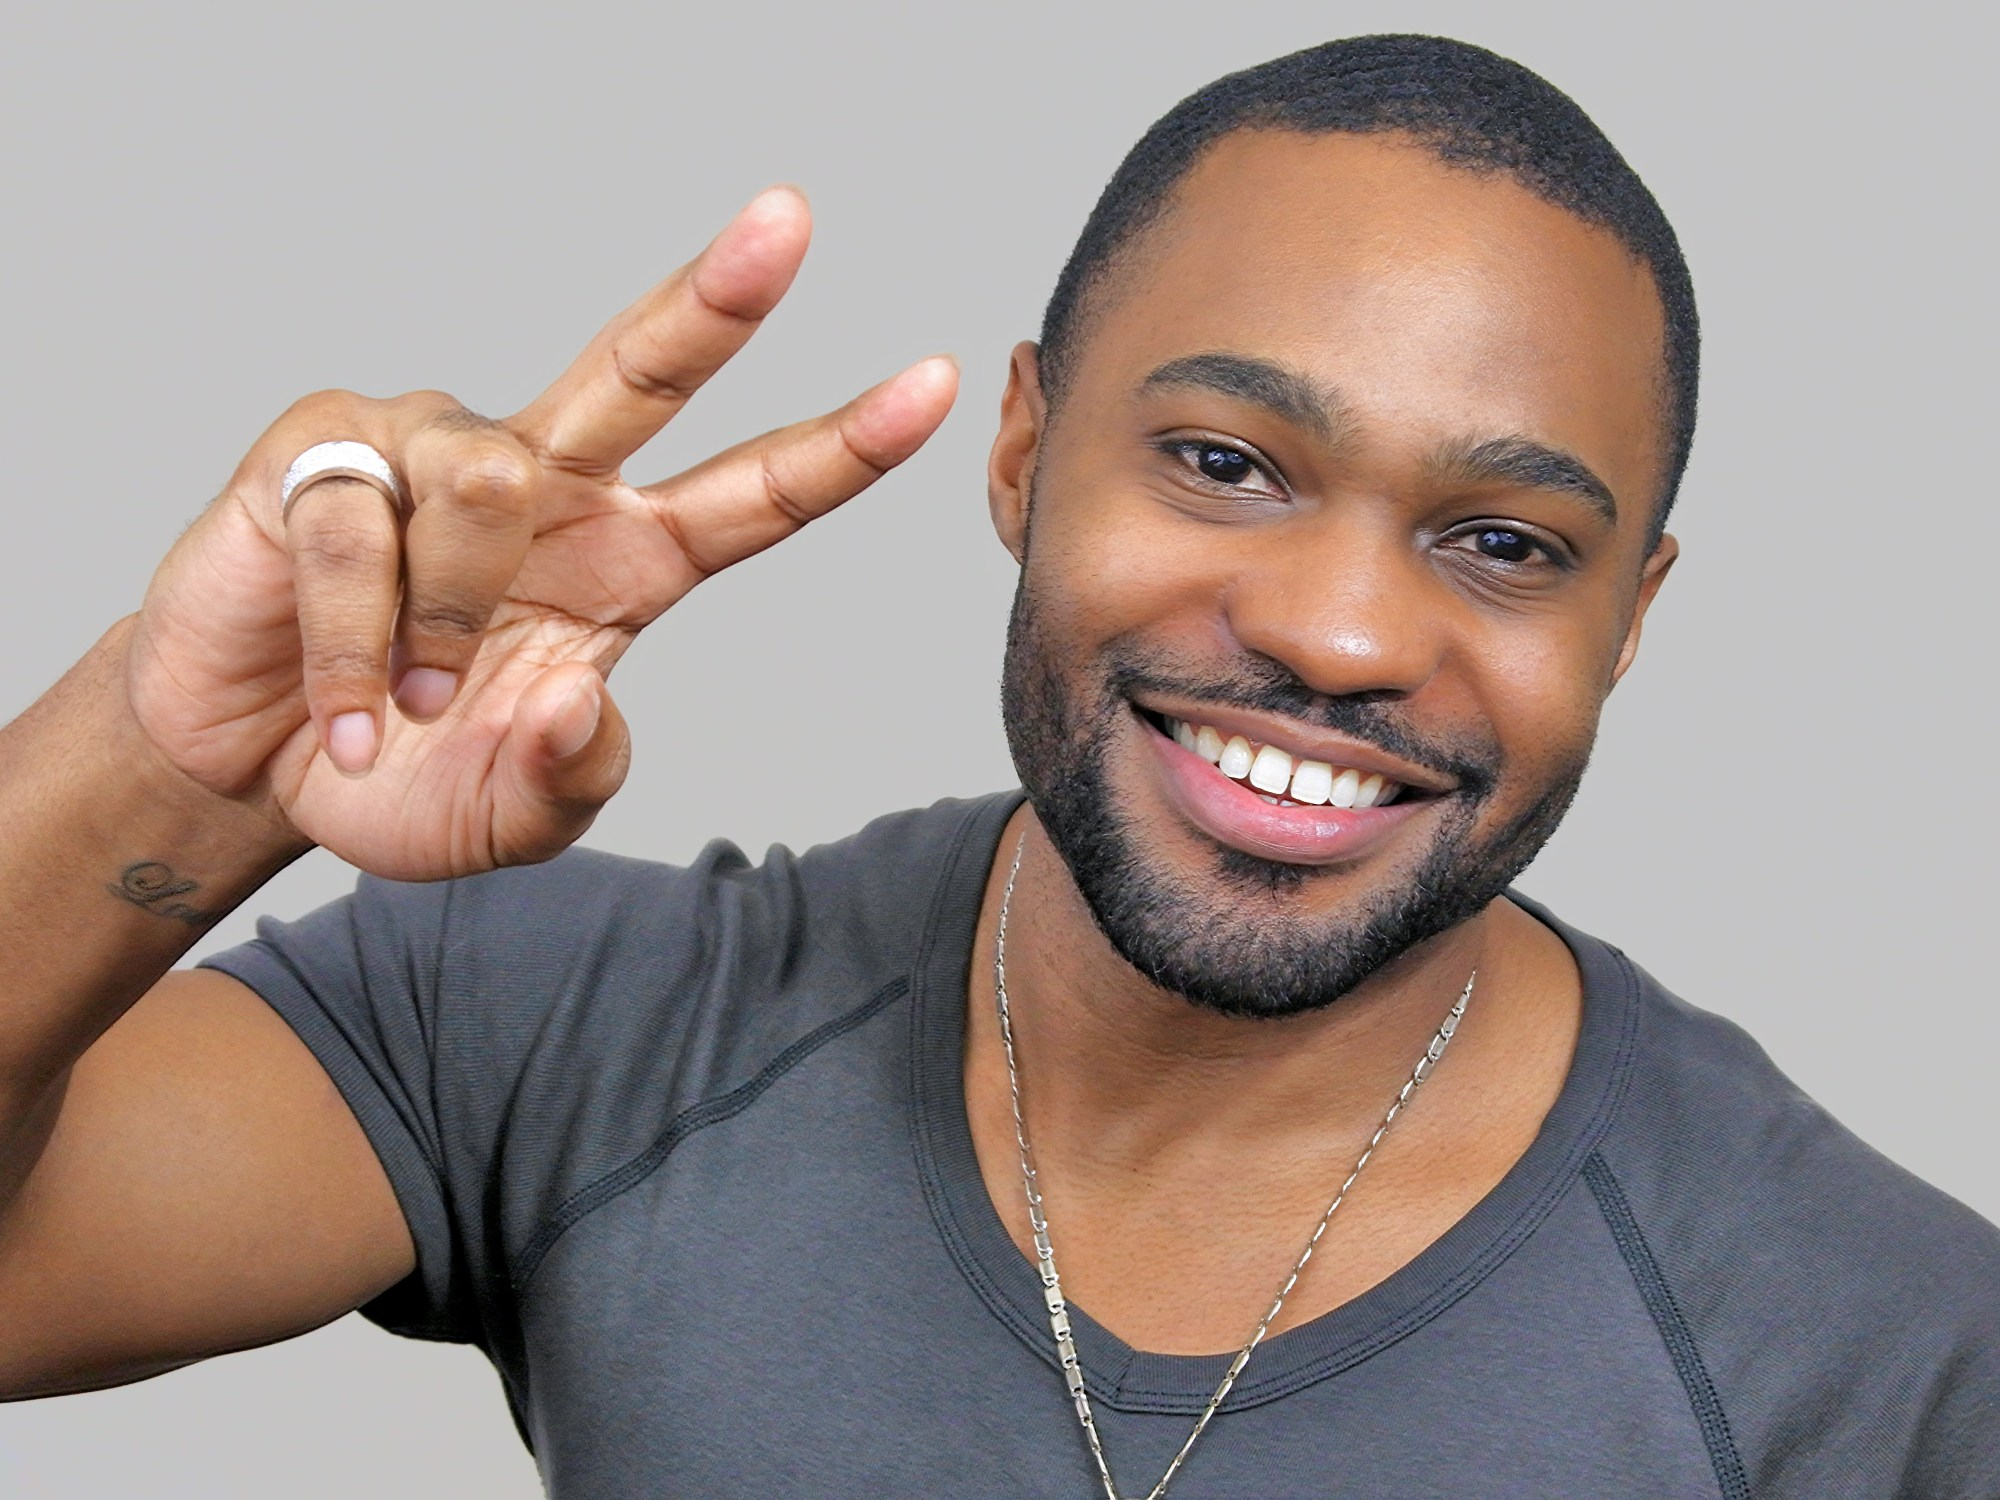 Peace and Love from celebrities social media public figure Tyrone